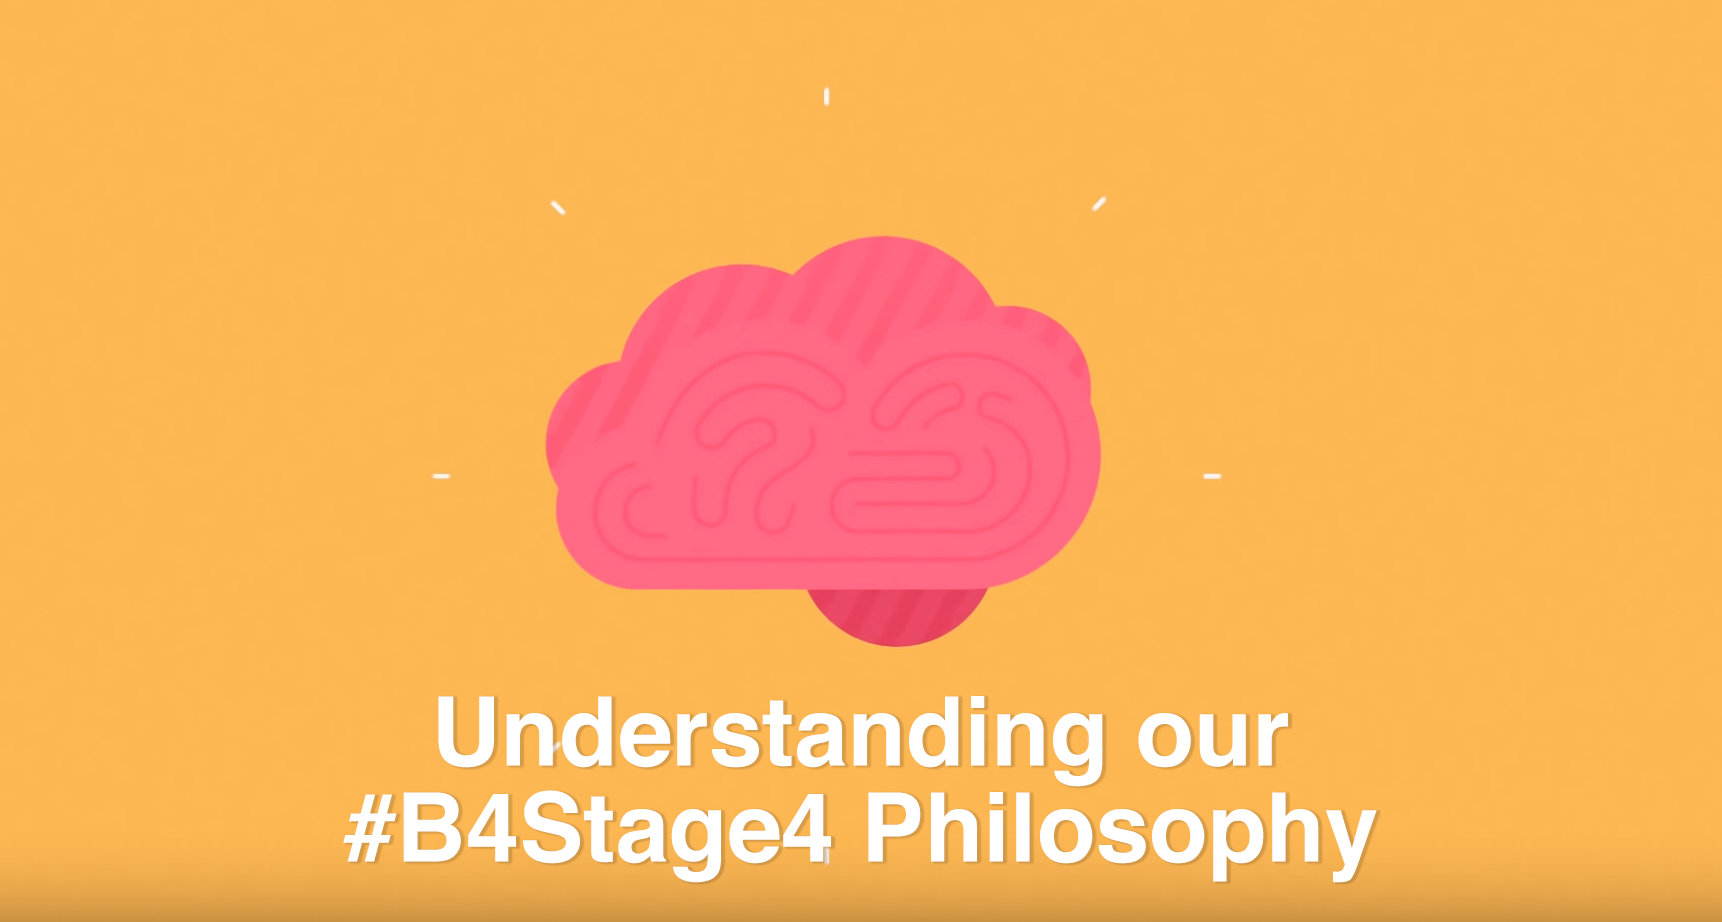 Understanding our #B4Stage4 Philosophy